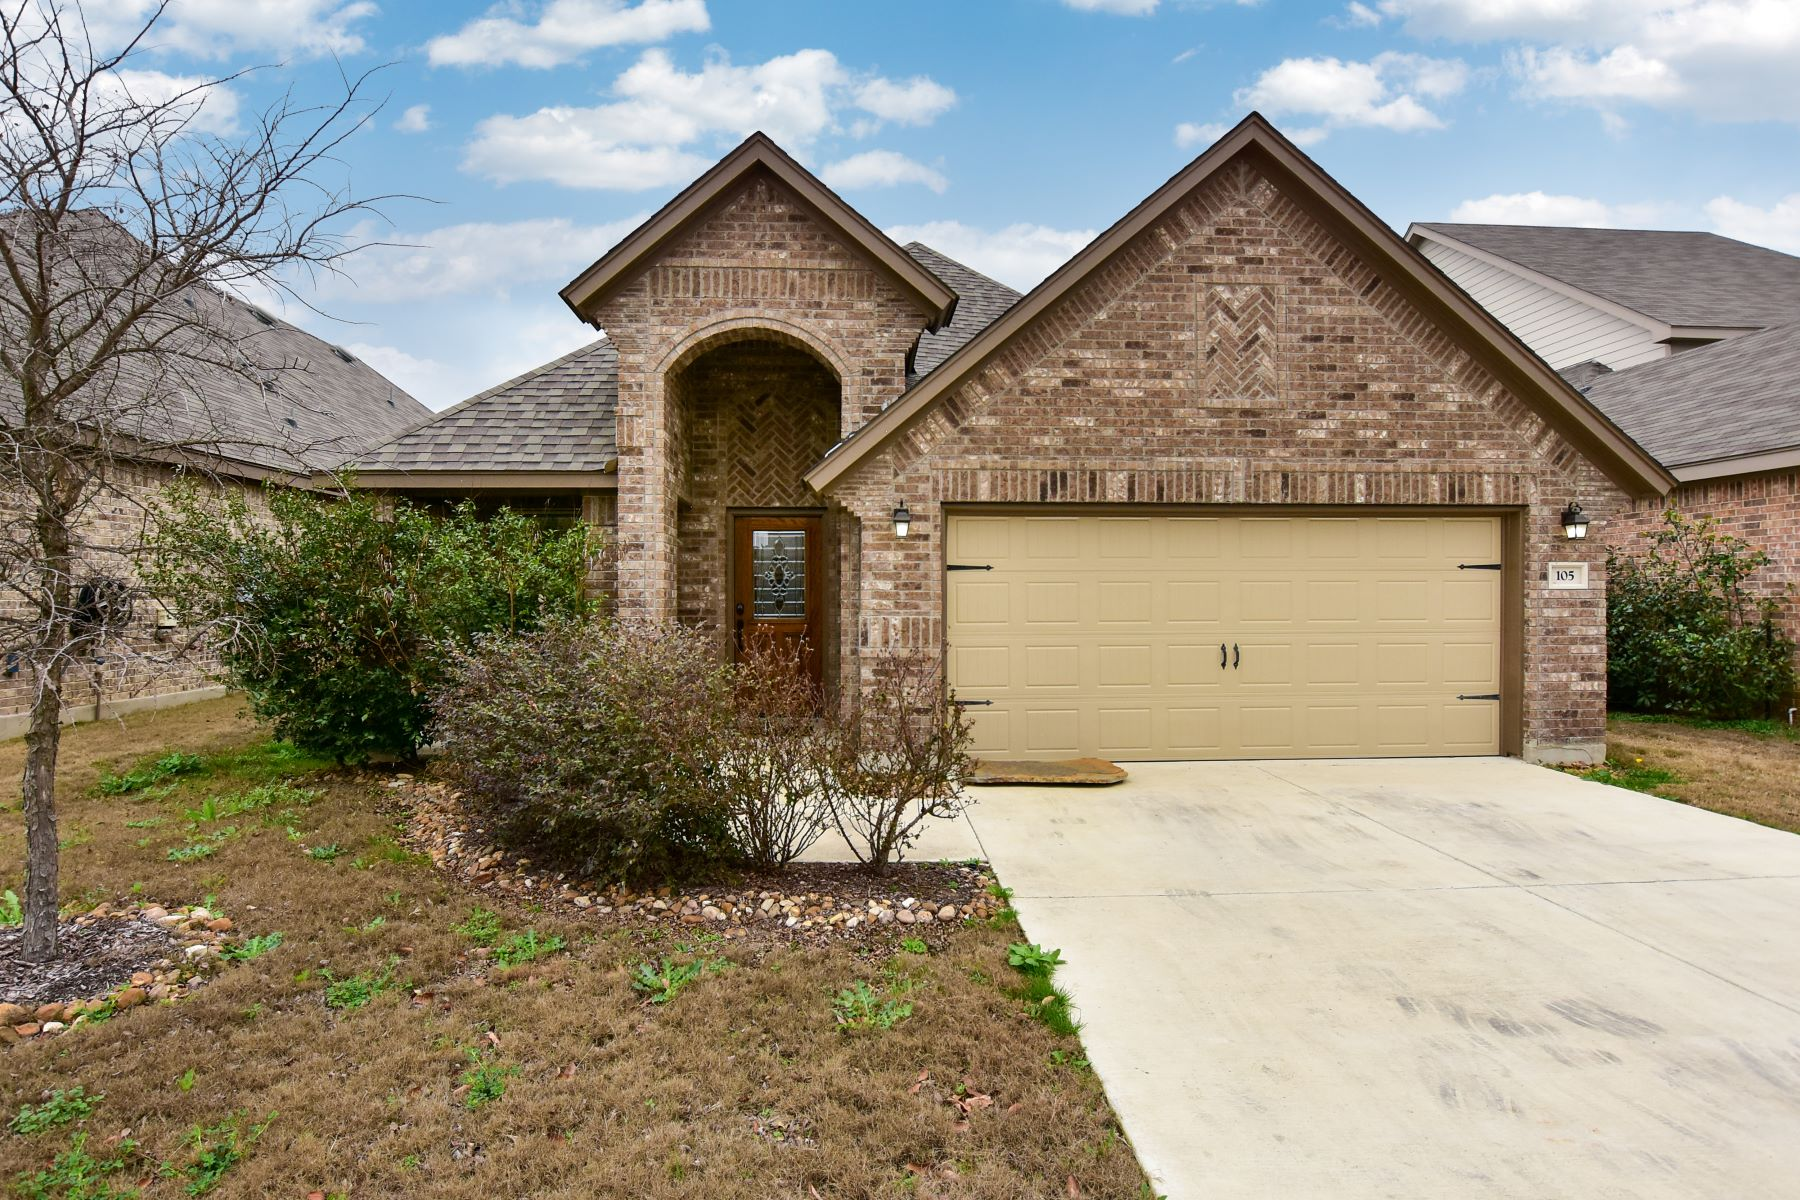 Single Family Home for Sale at Stunning Home in Boerne 105 Santa Anita Road Boerne, Texas 78006 United States